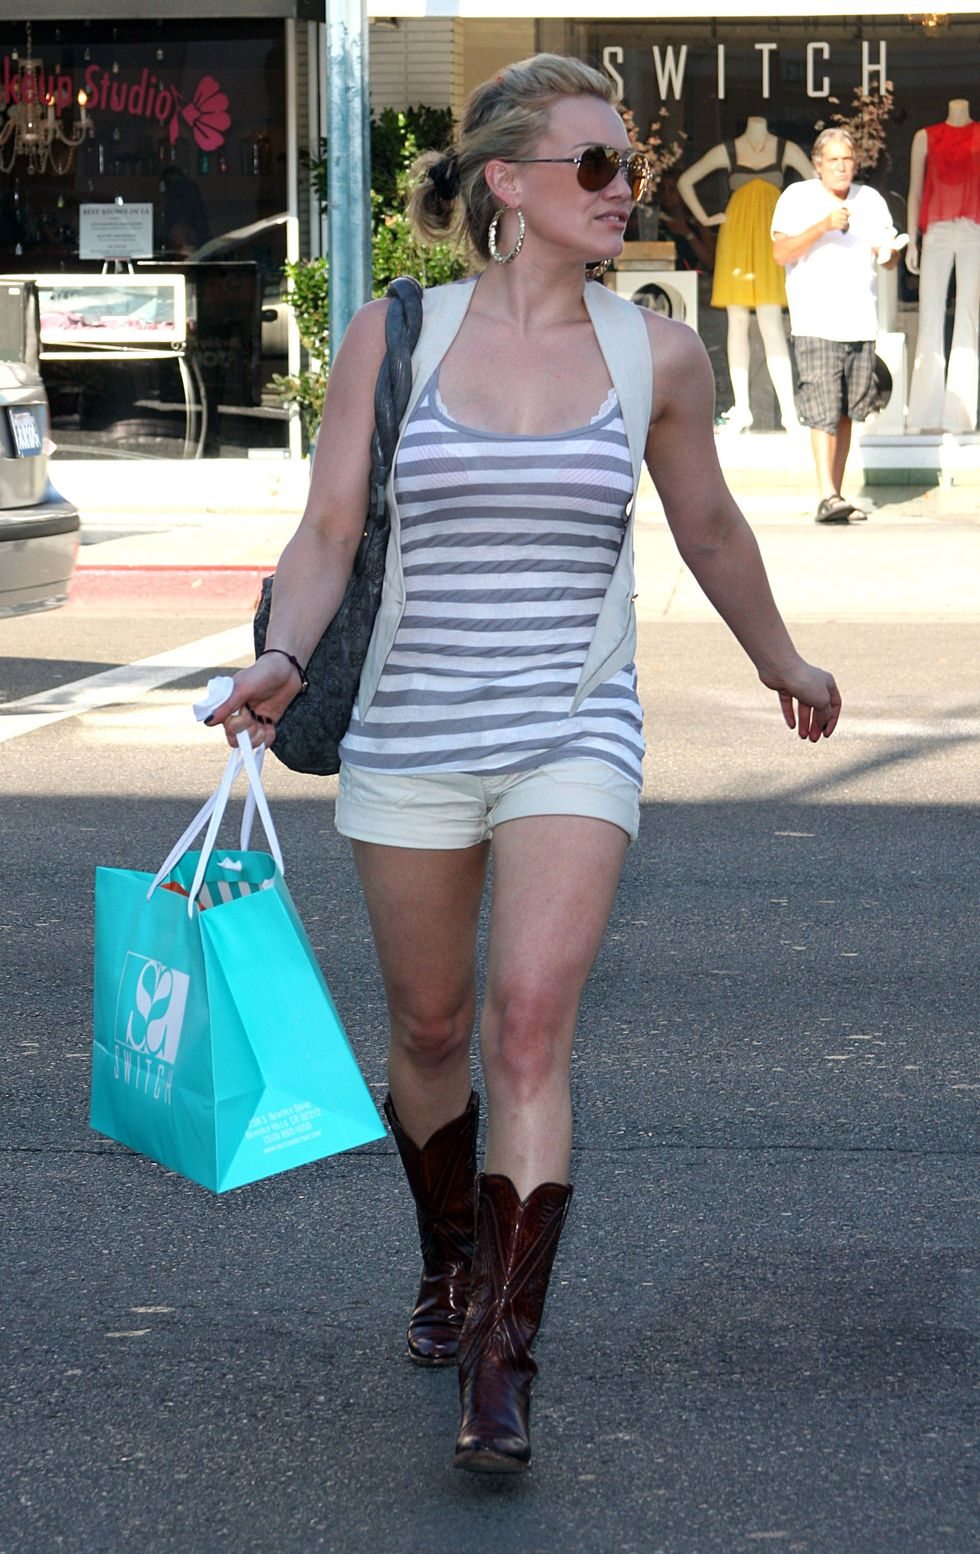 hilary-duff-cleavage-candids-in-beverly-hills-01